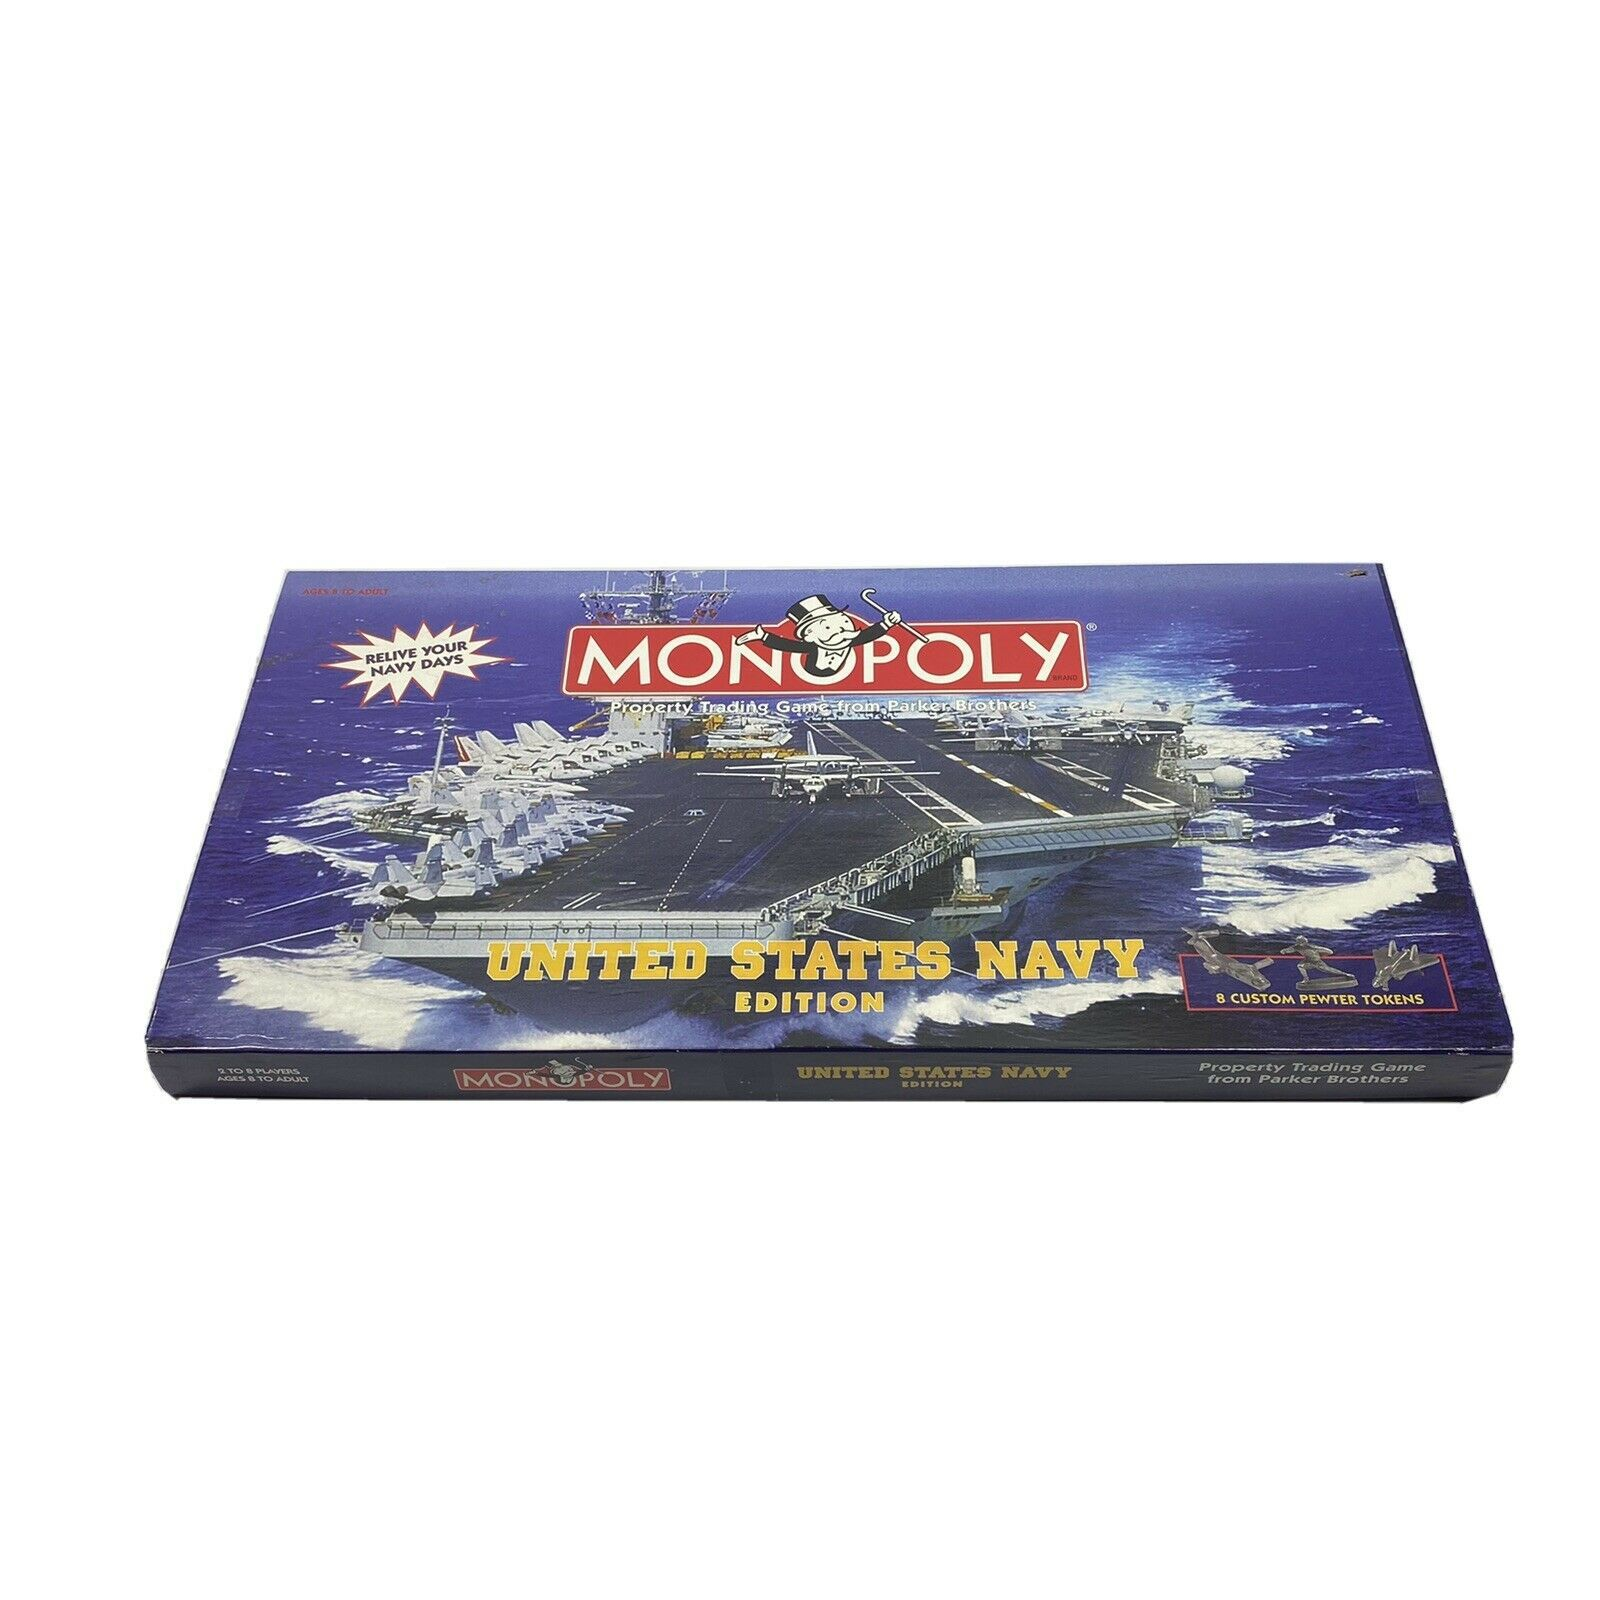 Monopoly United States Navy Edition 1998 Hasbro Complete VGUC - $37.99